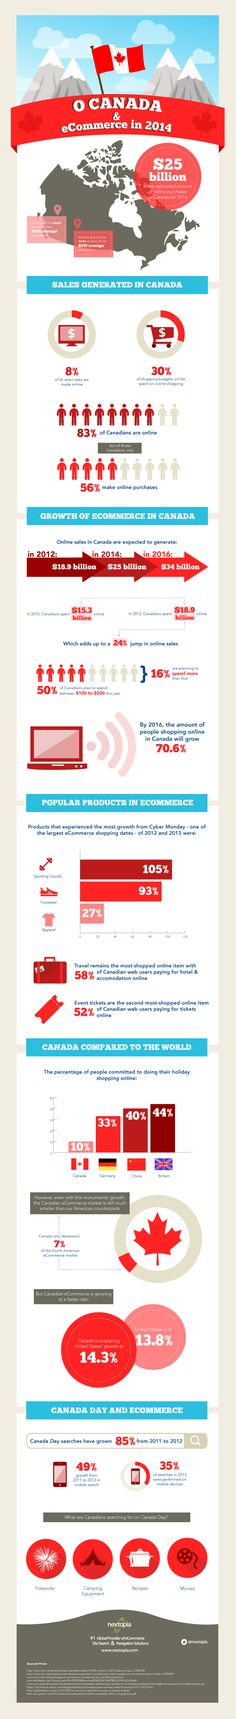 As a proud Canadian company it seemed fit to pay homage to our country and culture the best way we knew how, with a Canada Day eCommerce infographic! E Commerce, Outdoor Wood Projects, Information Design, Canada Day, Self Development, Digital Marketing, Business Infographics, Zoom, Solution